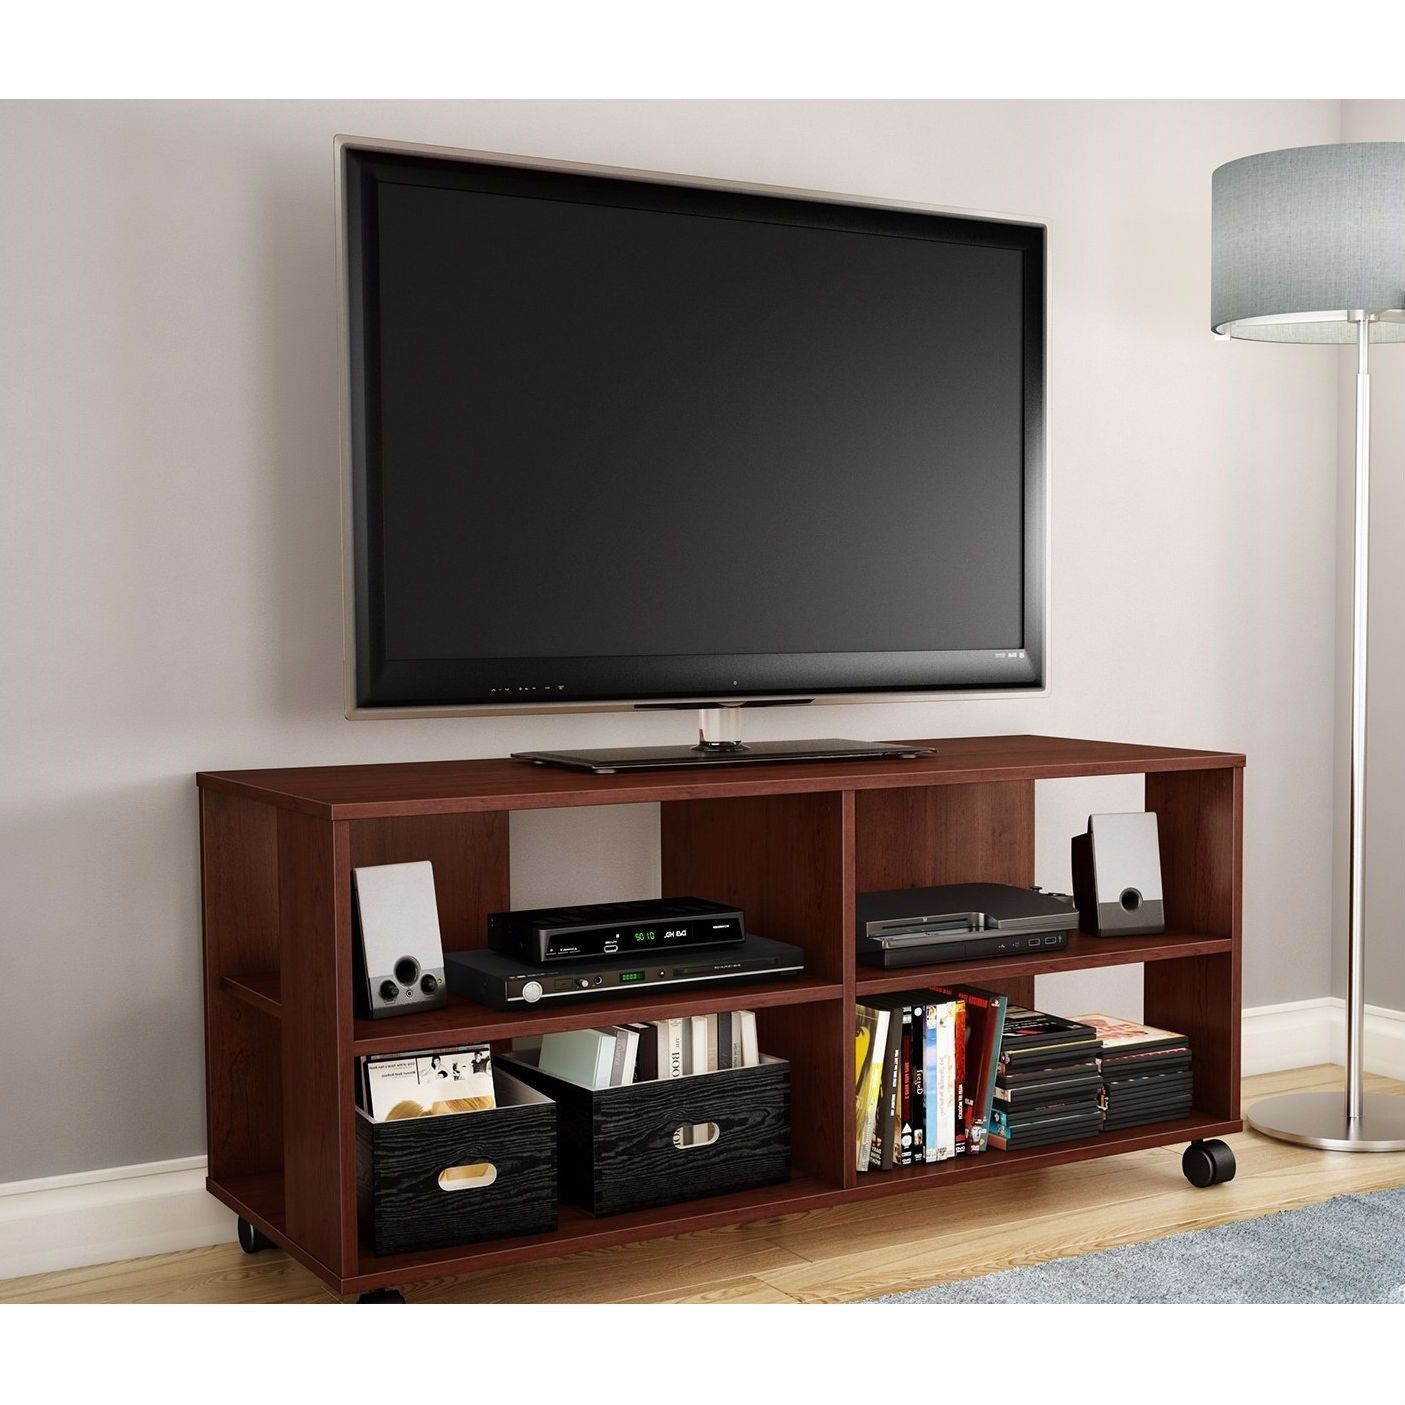 Modern Royal Cherry Finish Tv Stand With Casters Wheels Pertaining To Square Tv Stands (View 4 of 15)